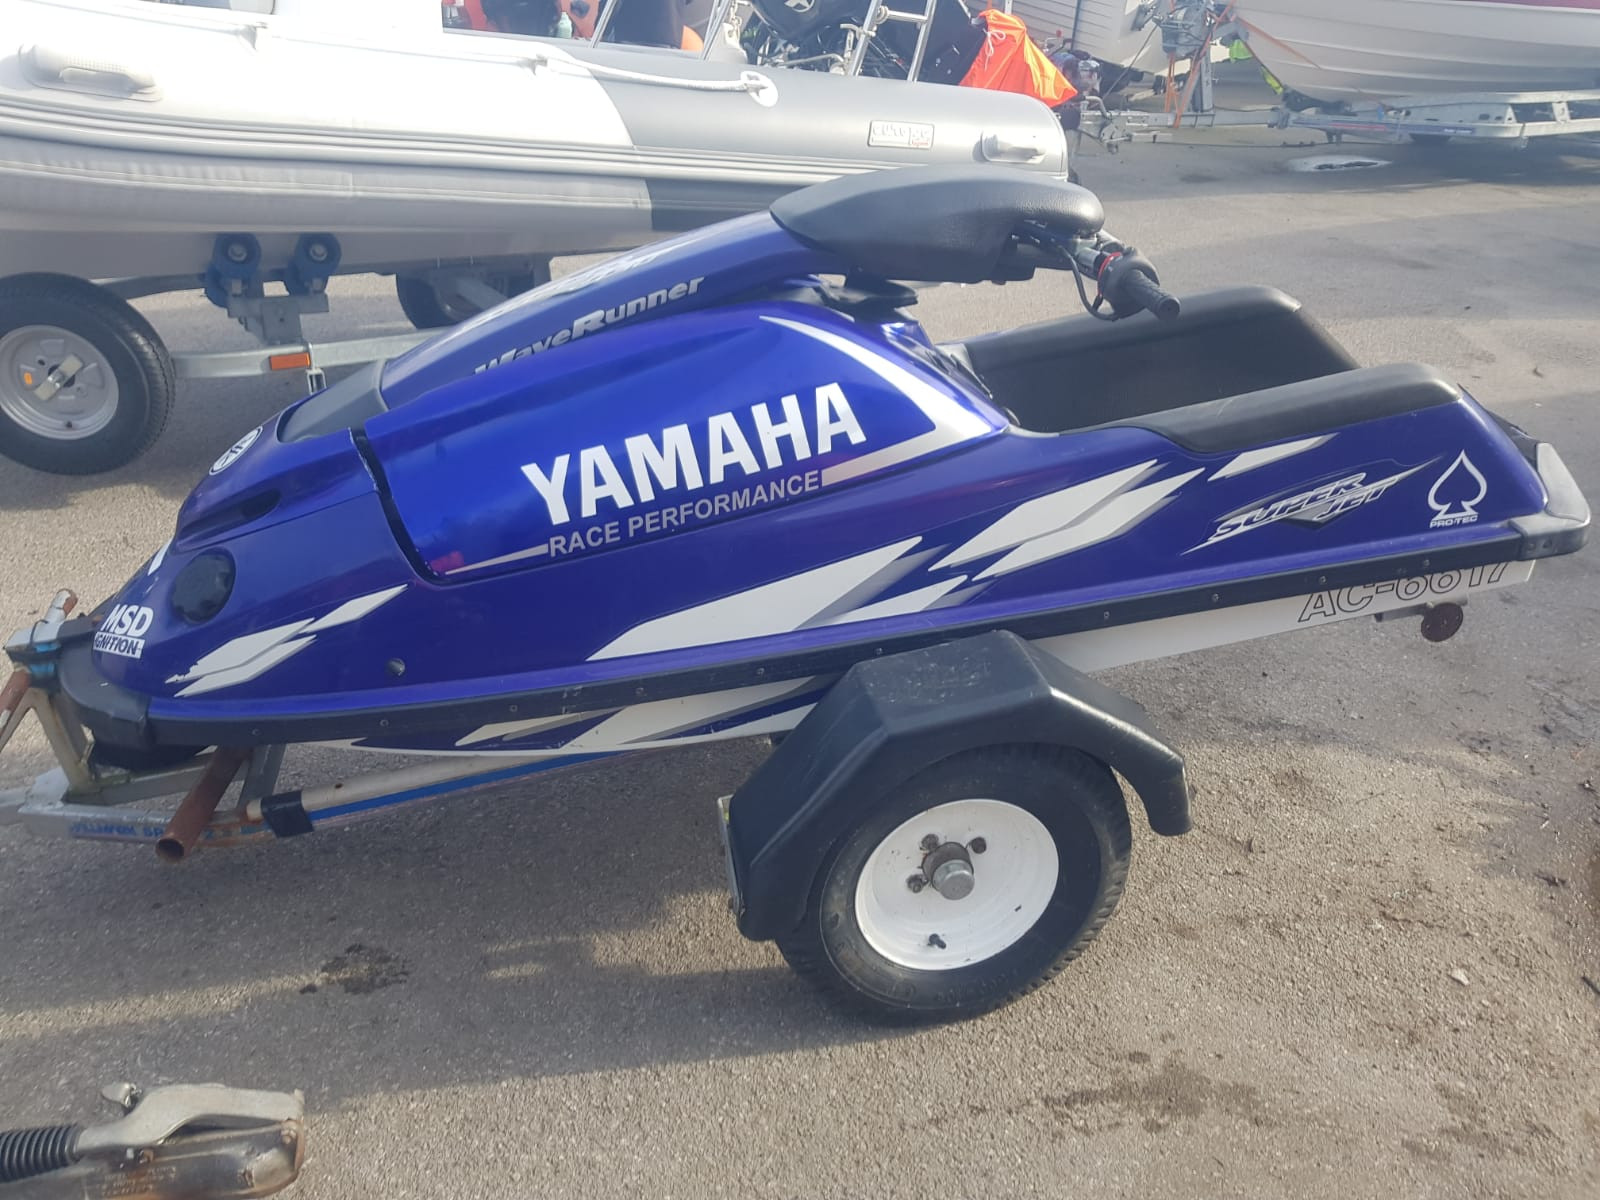 Used Personal Water Craft For Sale M E S  Marine